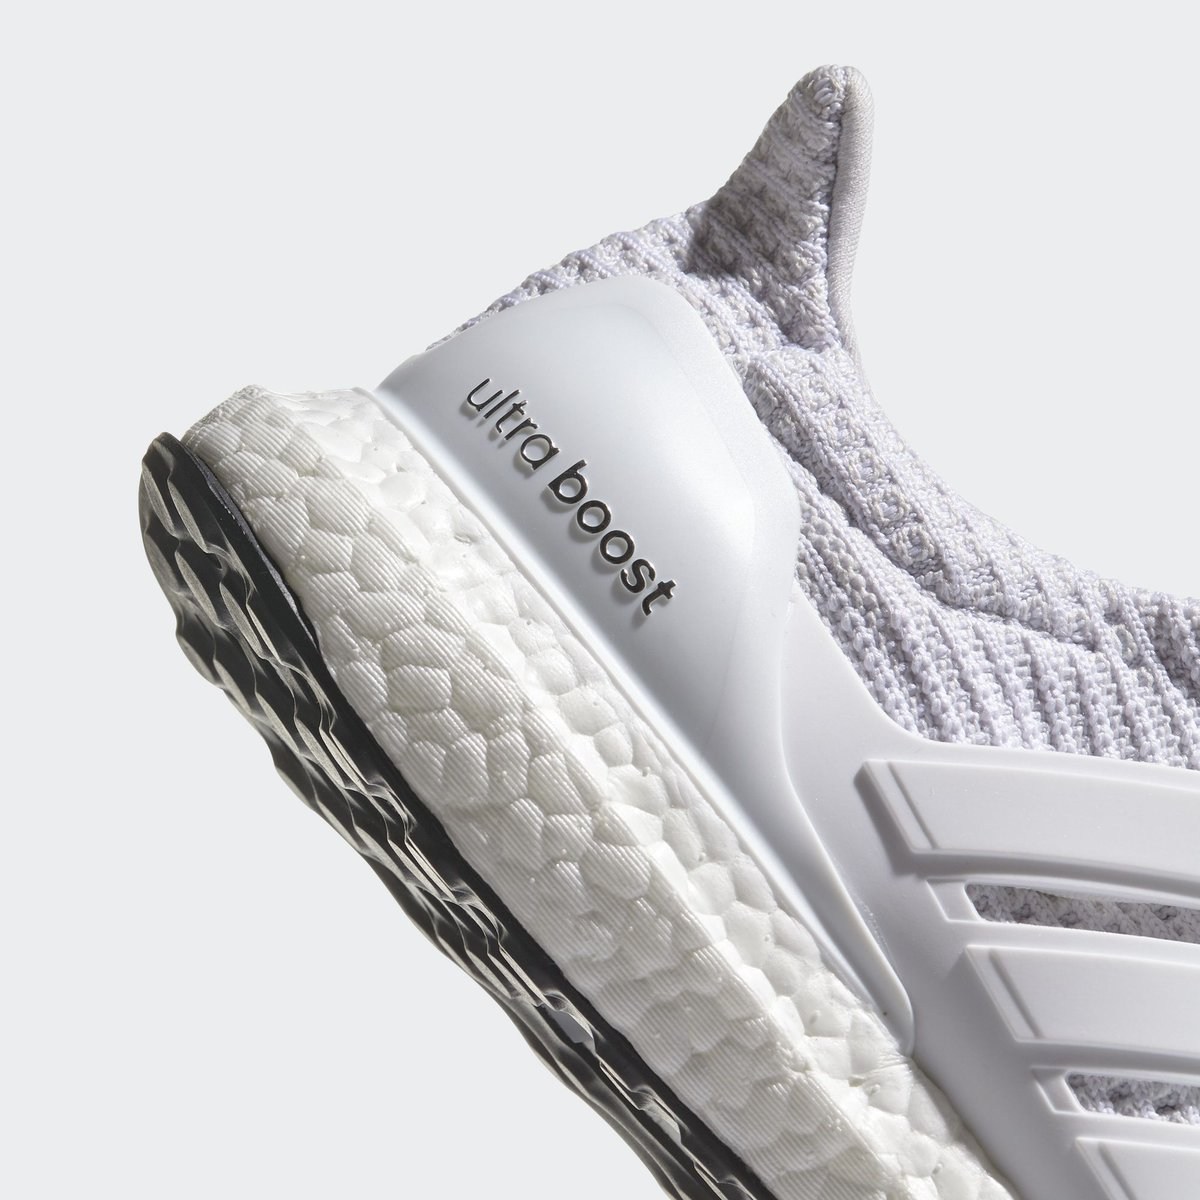 aca5a4588 ICYMI  Now available for preorder. adidas Ultra Boost 4.0. Use VIP discount  for 10% off. —  http   bit.ly 2zhlKRX pic.twitter.com eZCTgMA6iT